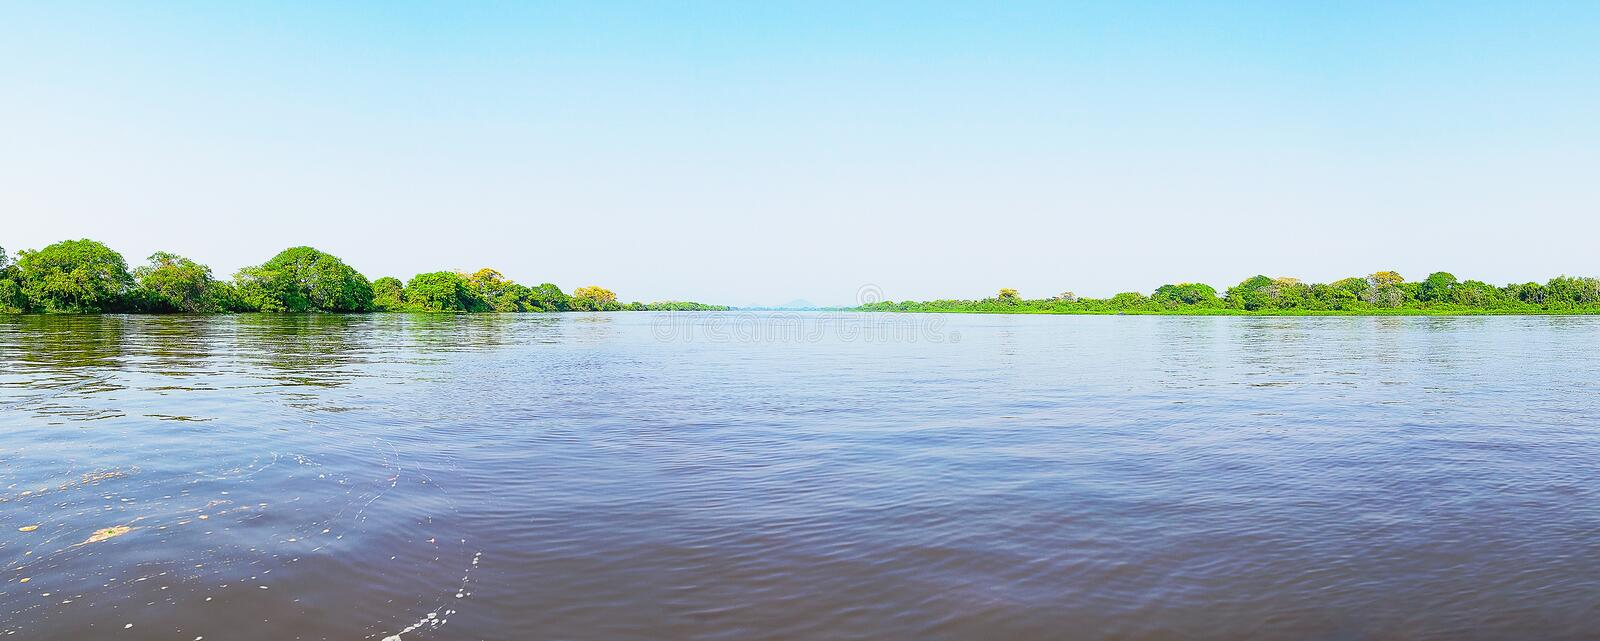 Pantanal landscape with the river and green vegetation around stock image